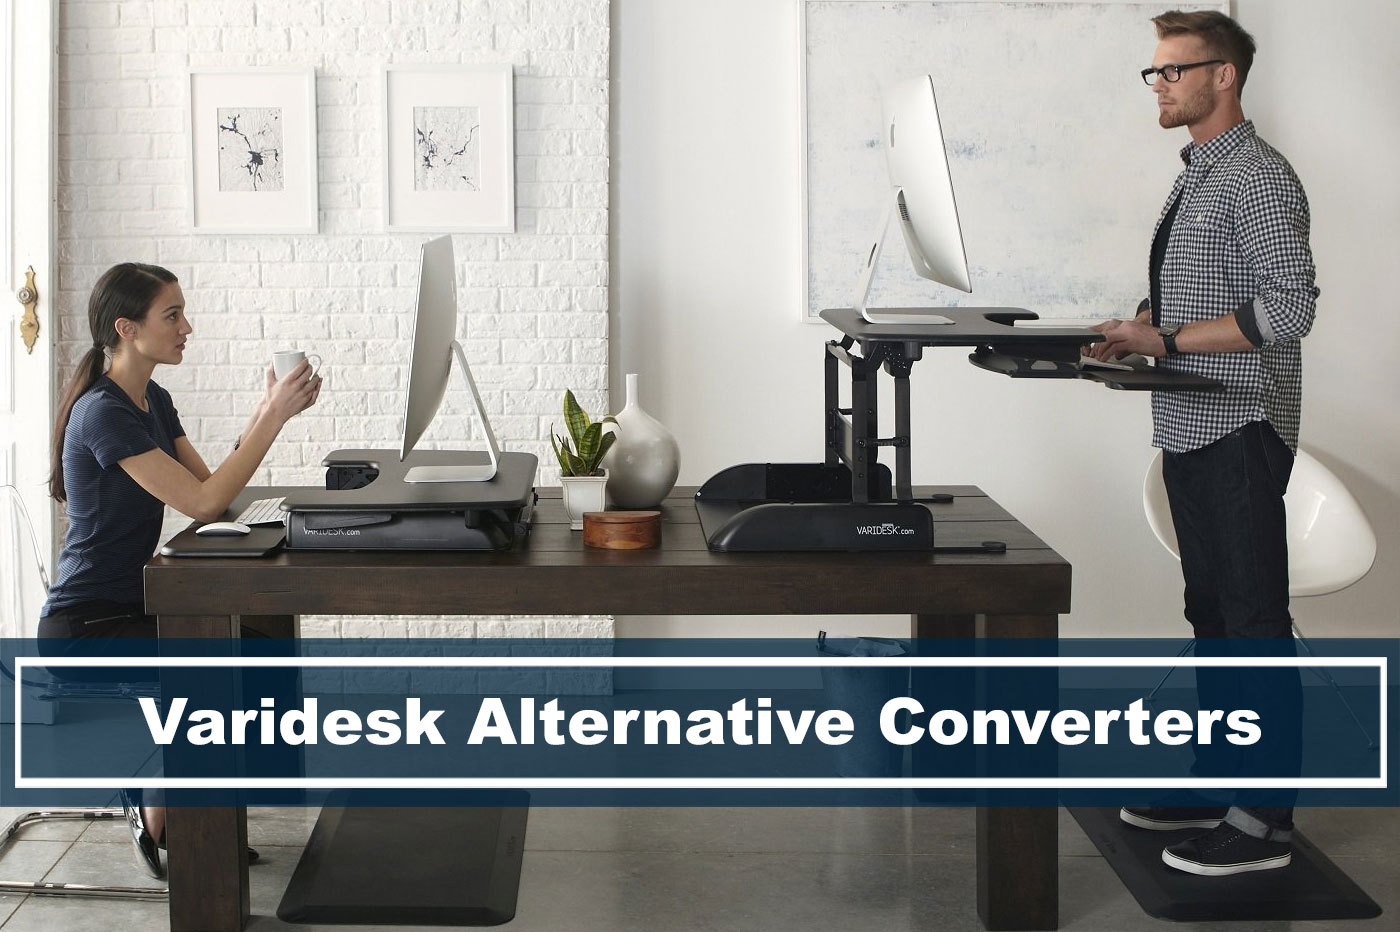 top selling varidesk alternatives and competitor desk converters